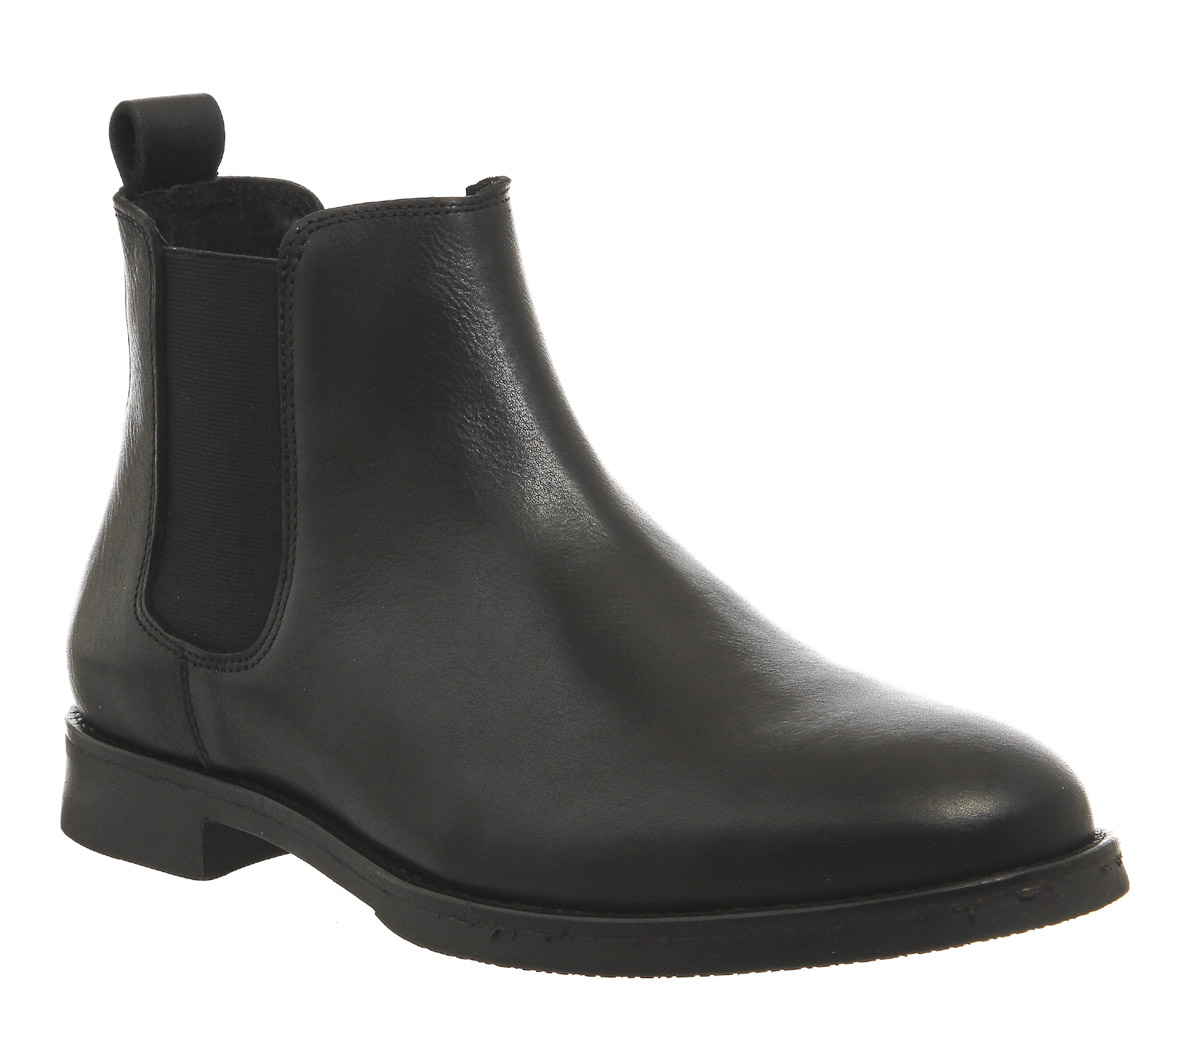 Mens Office Cage Chelsea Boots BLACK LEATHER Boots